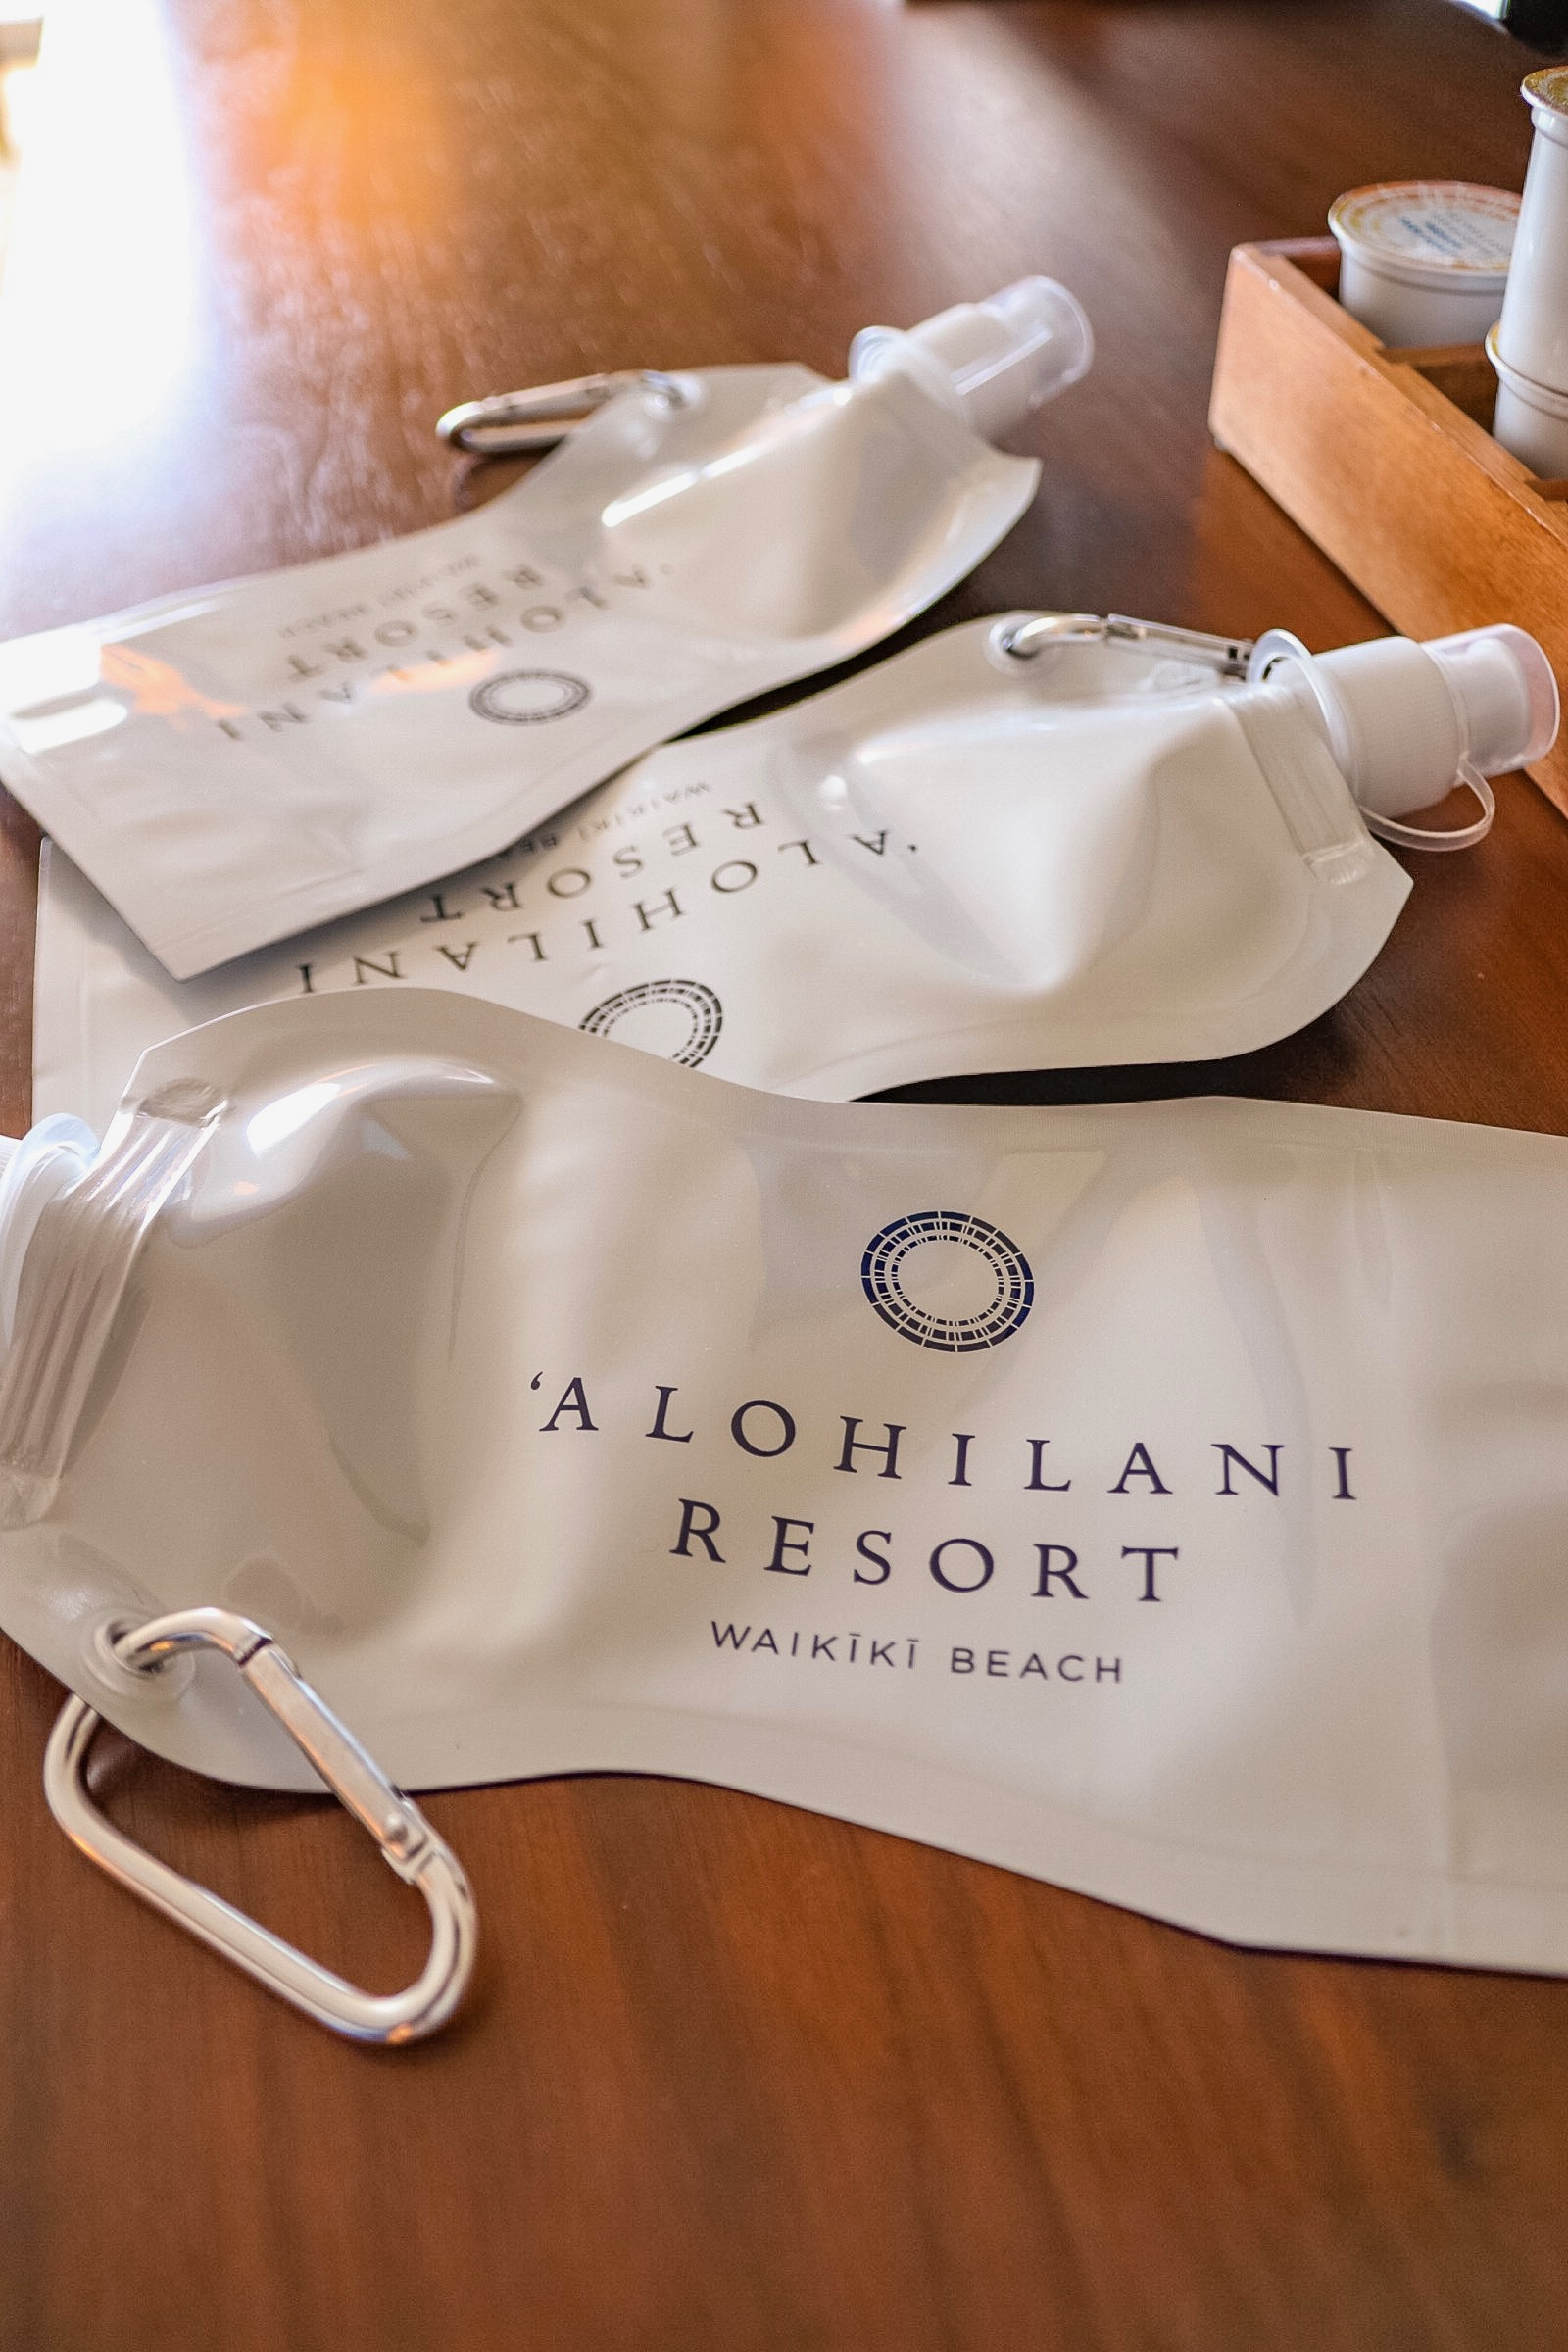 alohilani resort Waikiki beach